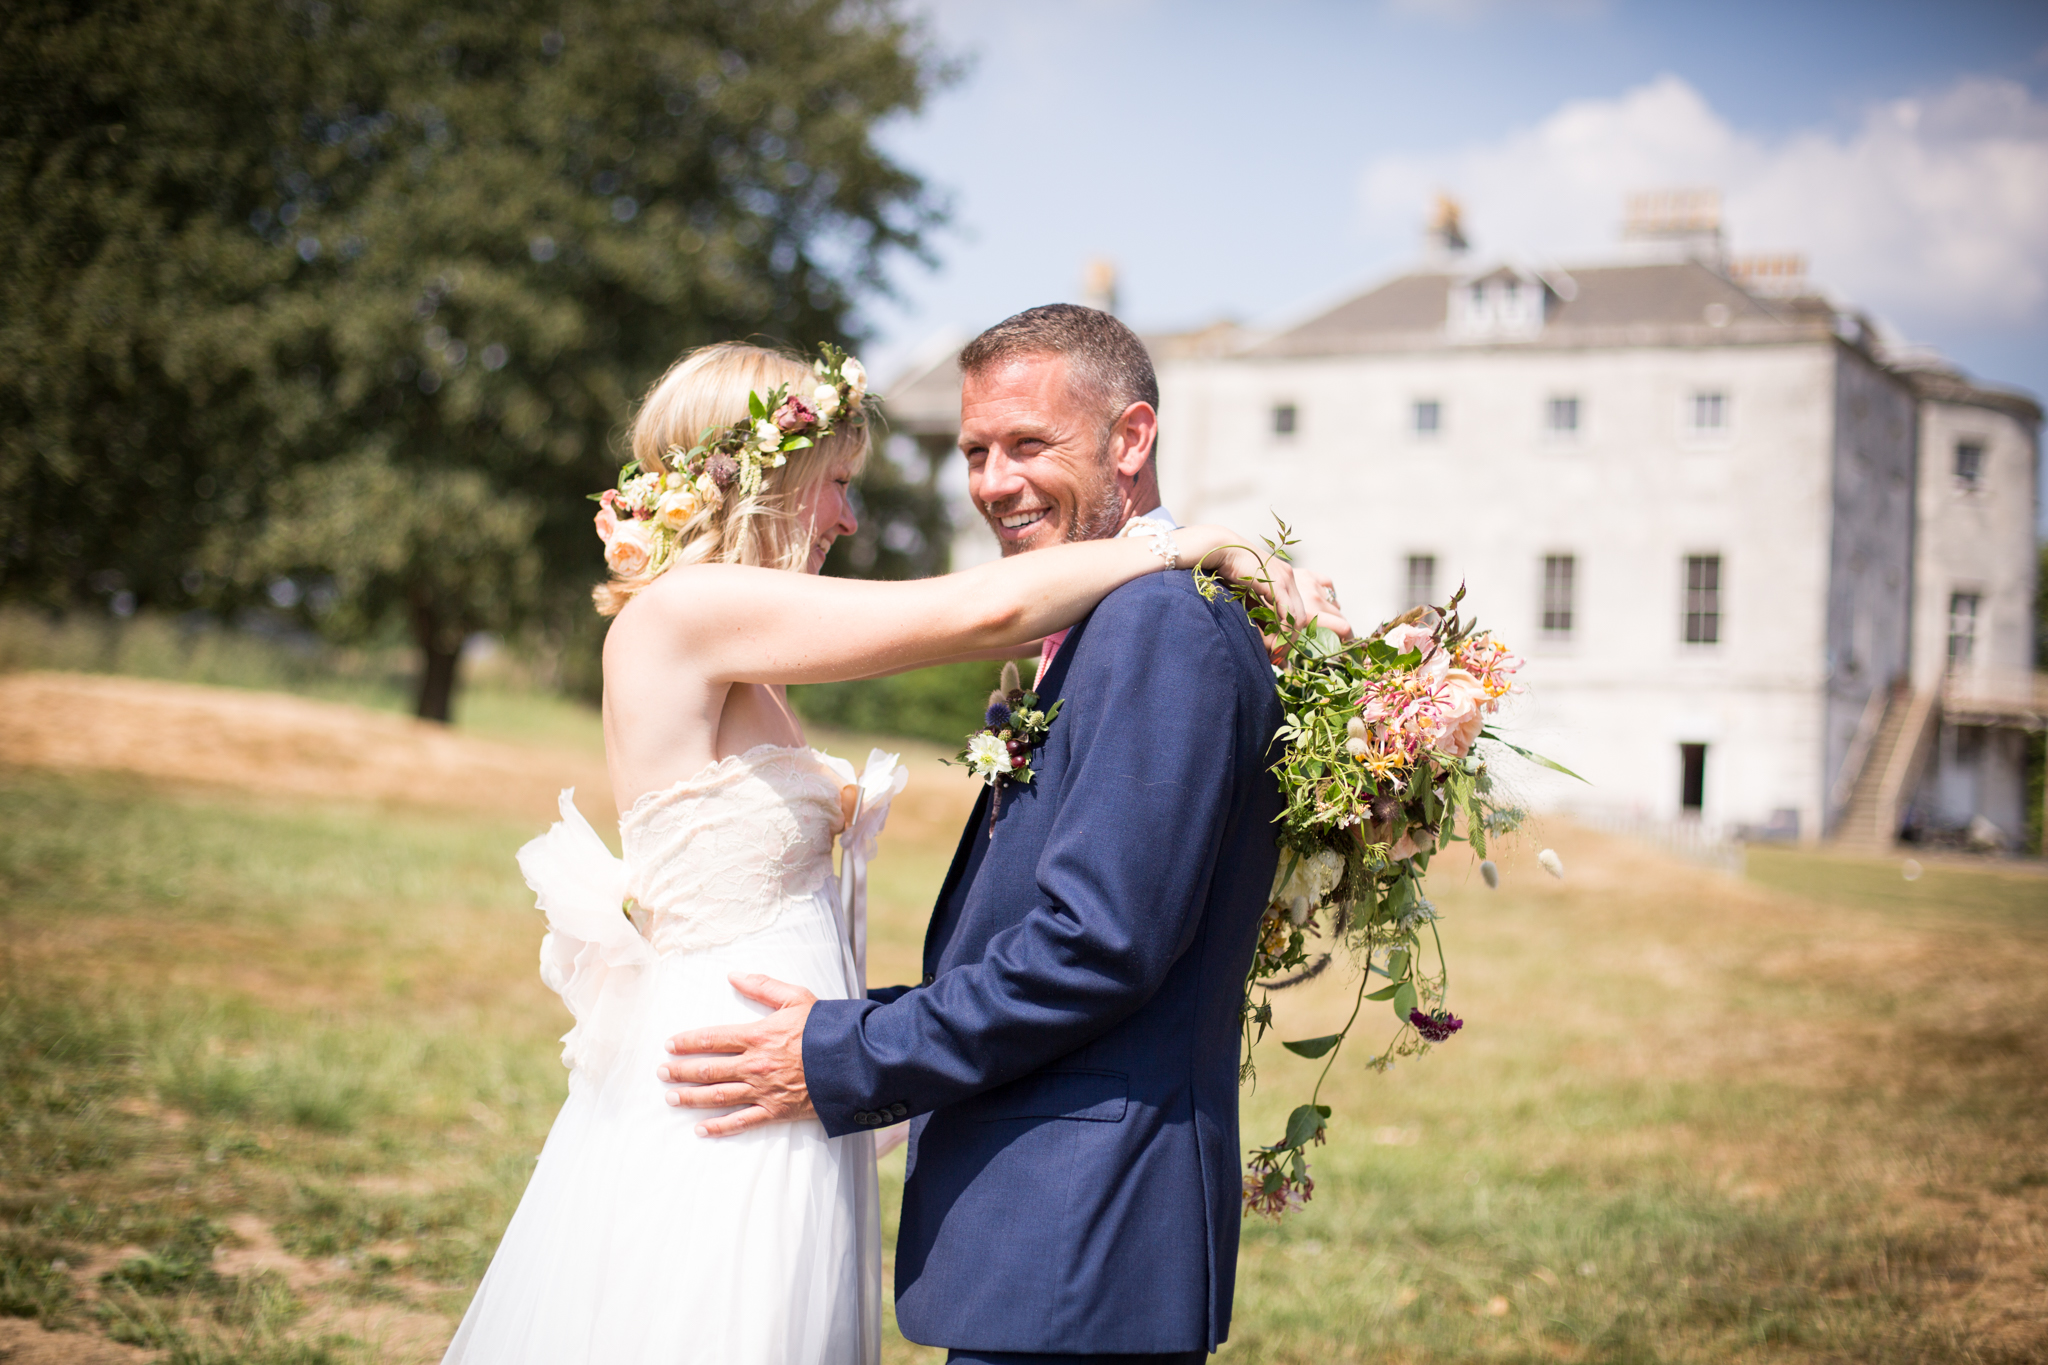 Smiling groom in London wedding photography image